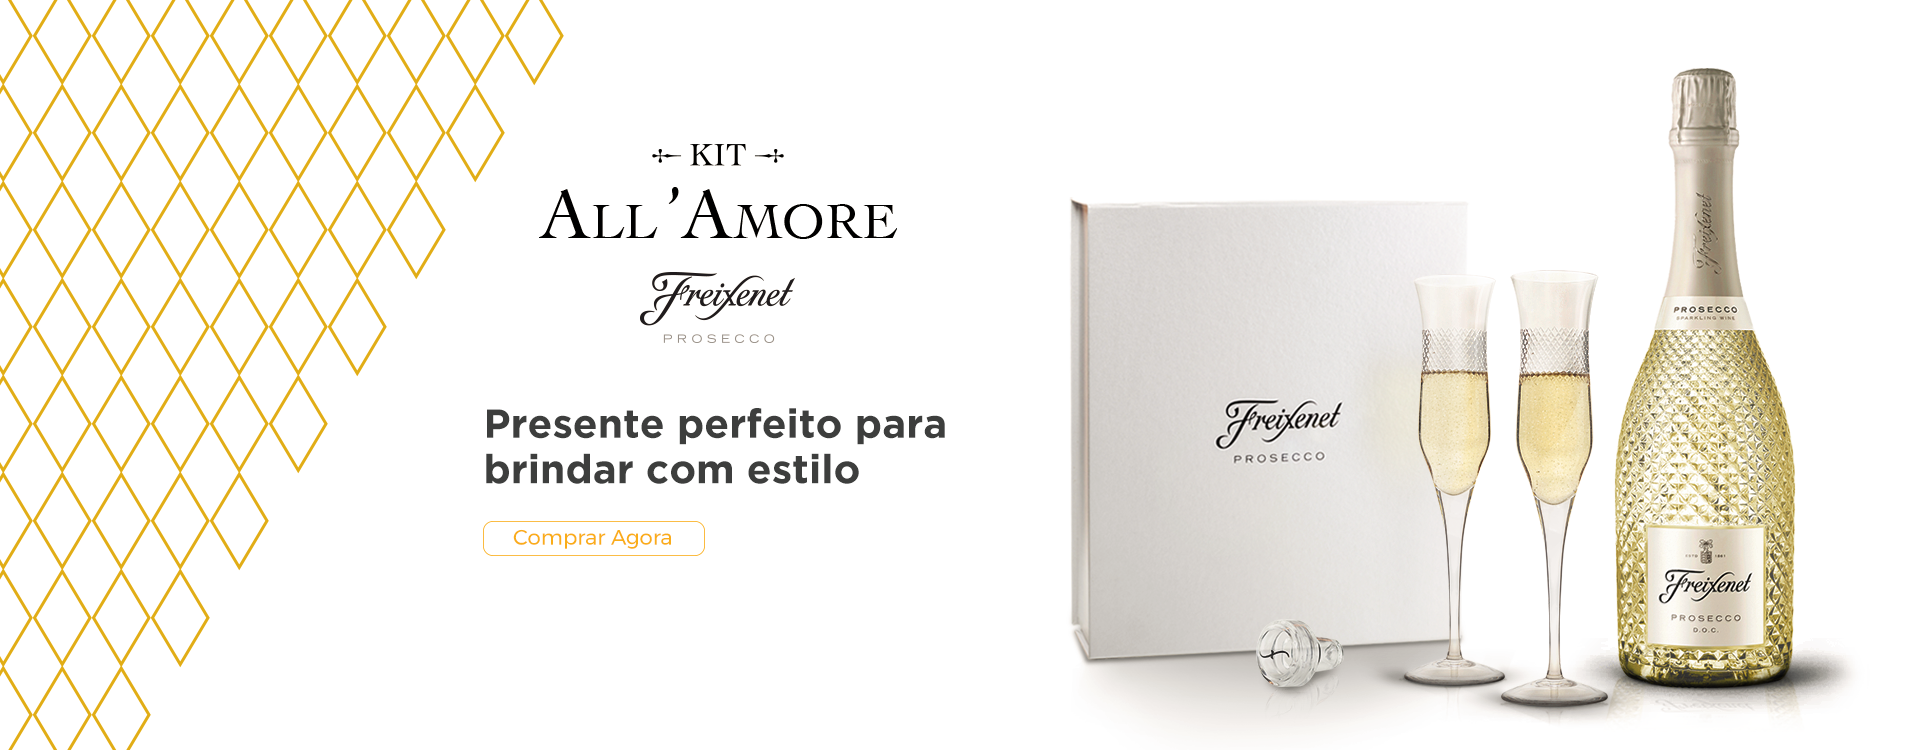 Kit all amore